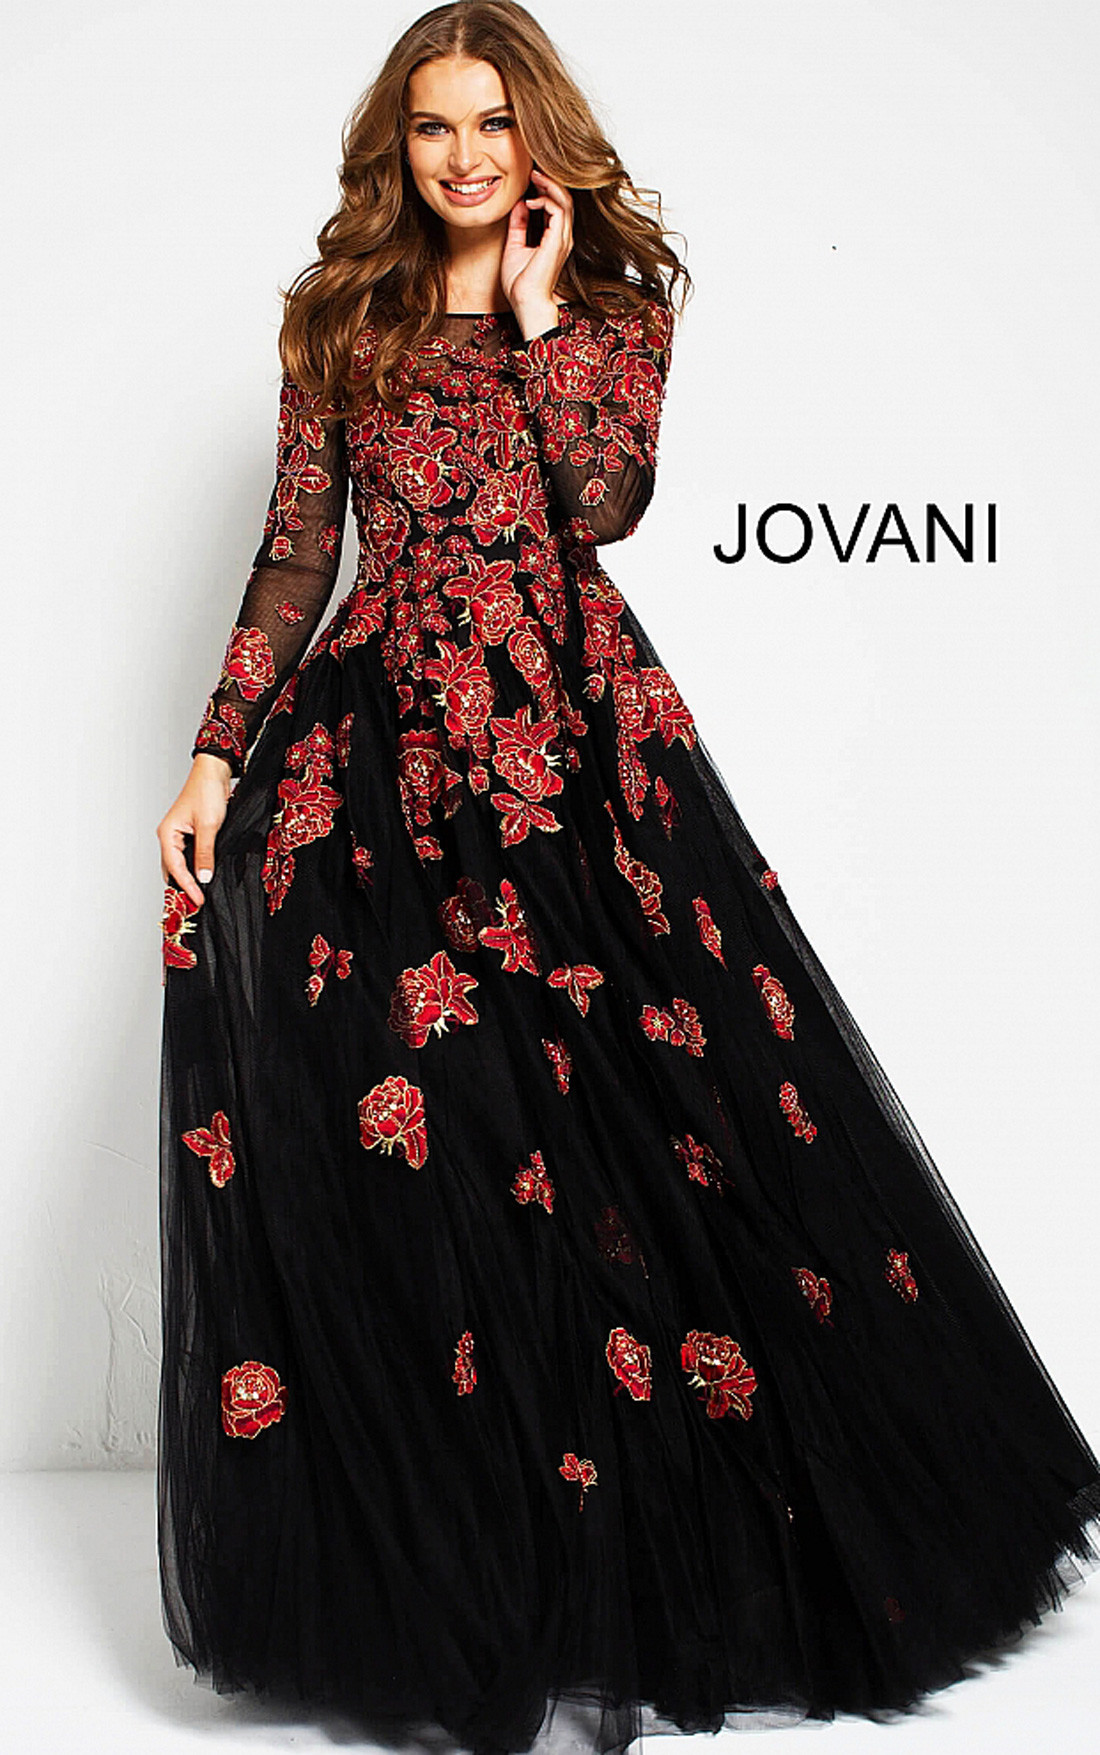 Jovani - Black Gown with Red Floral Embroidery (53088)